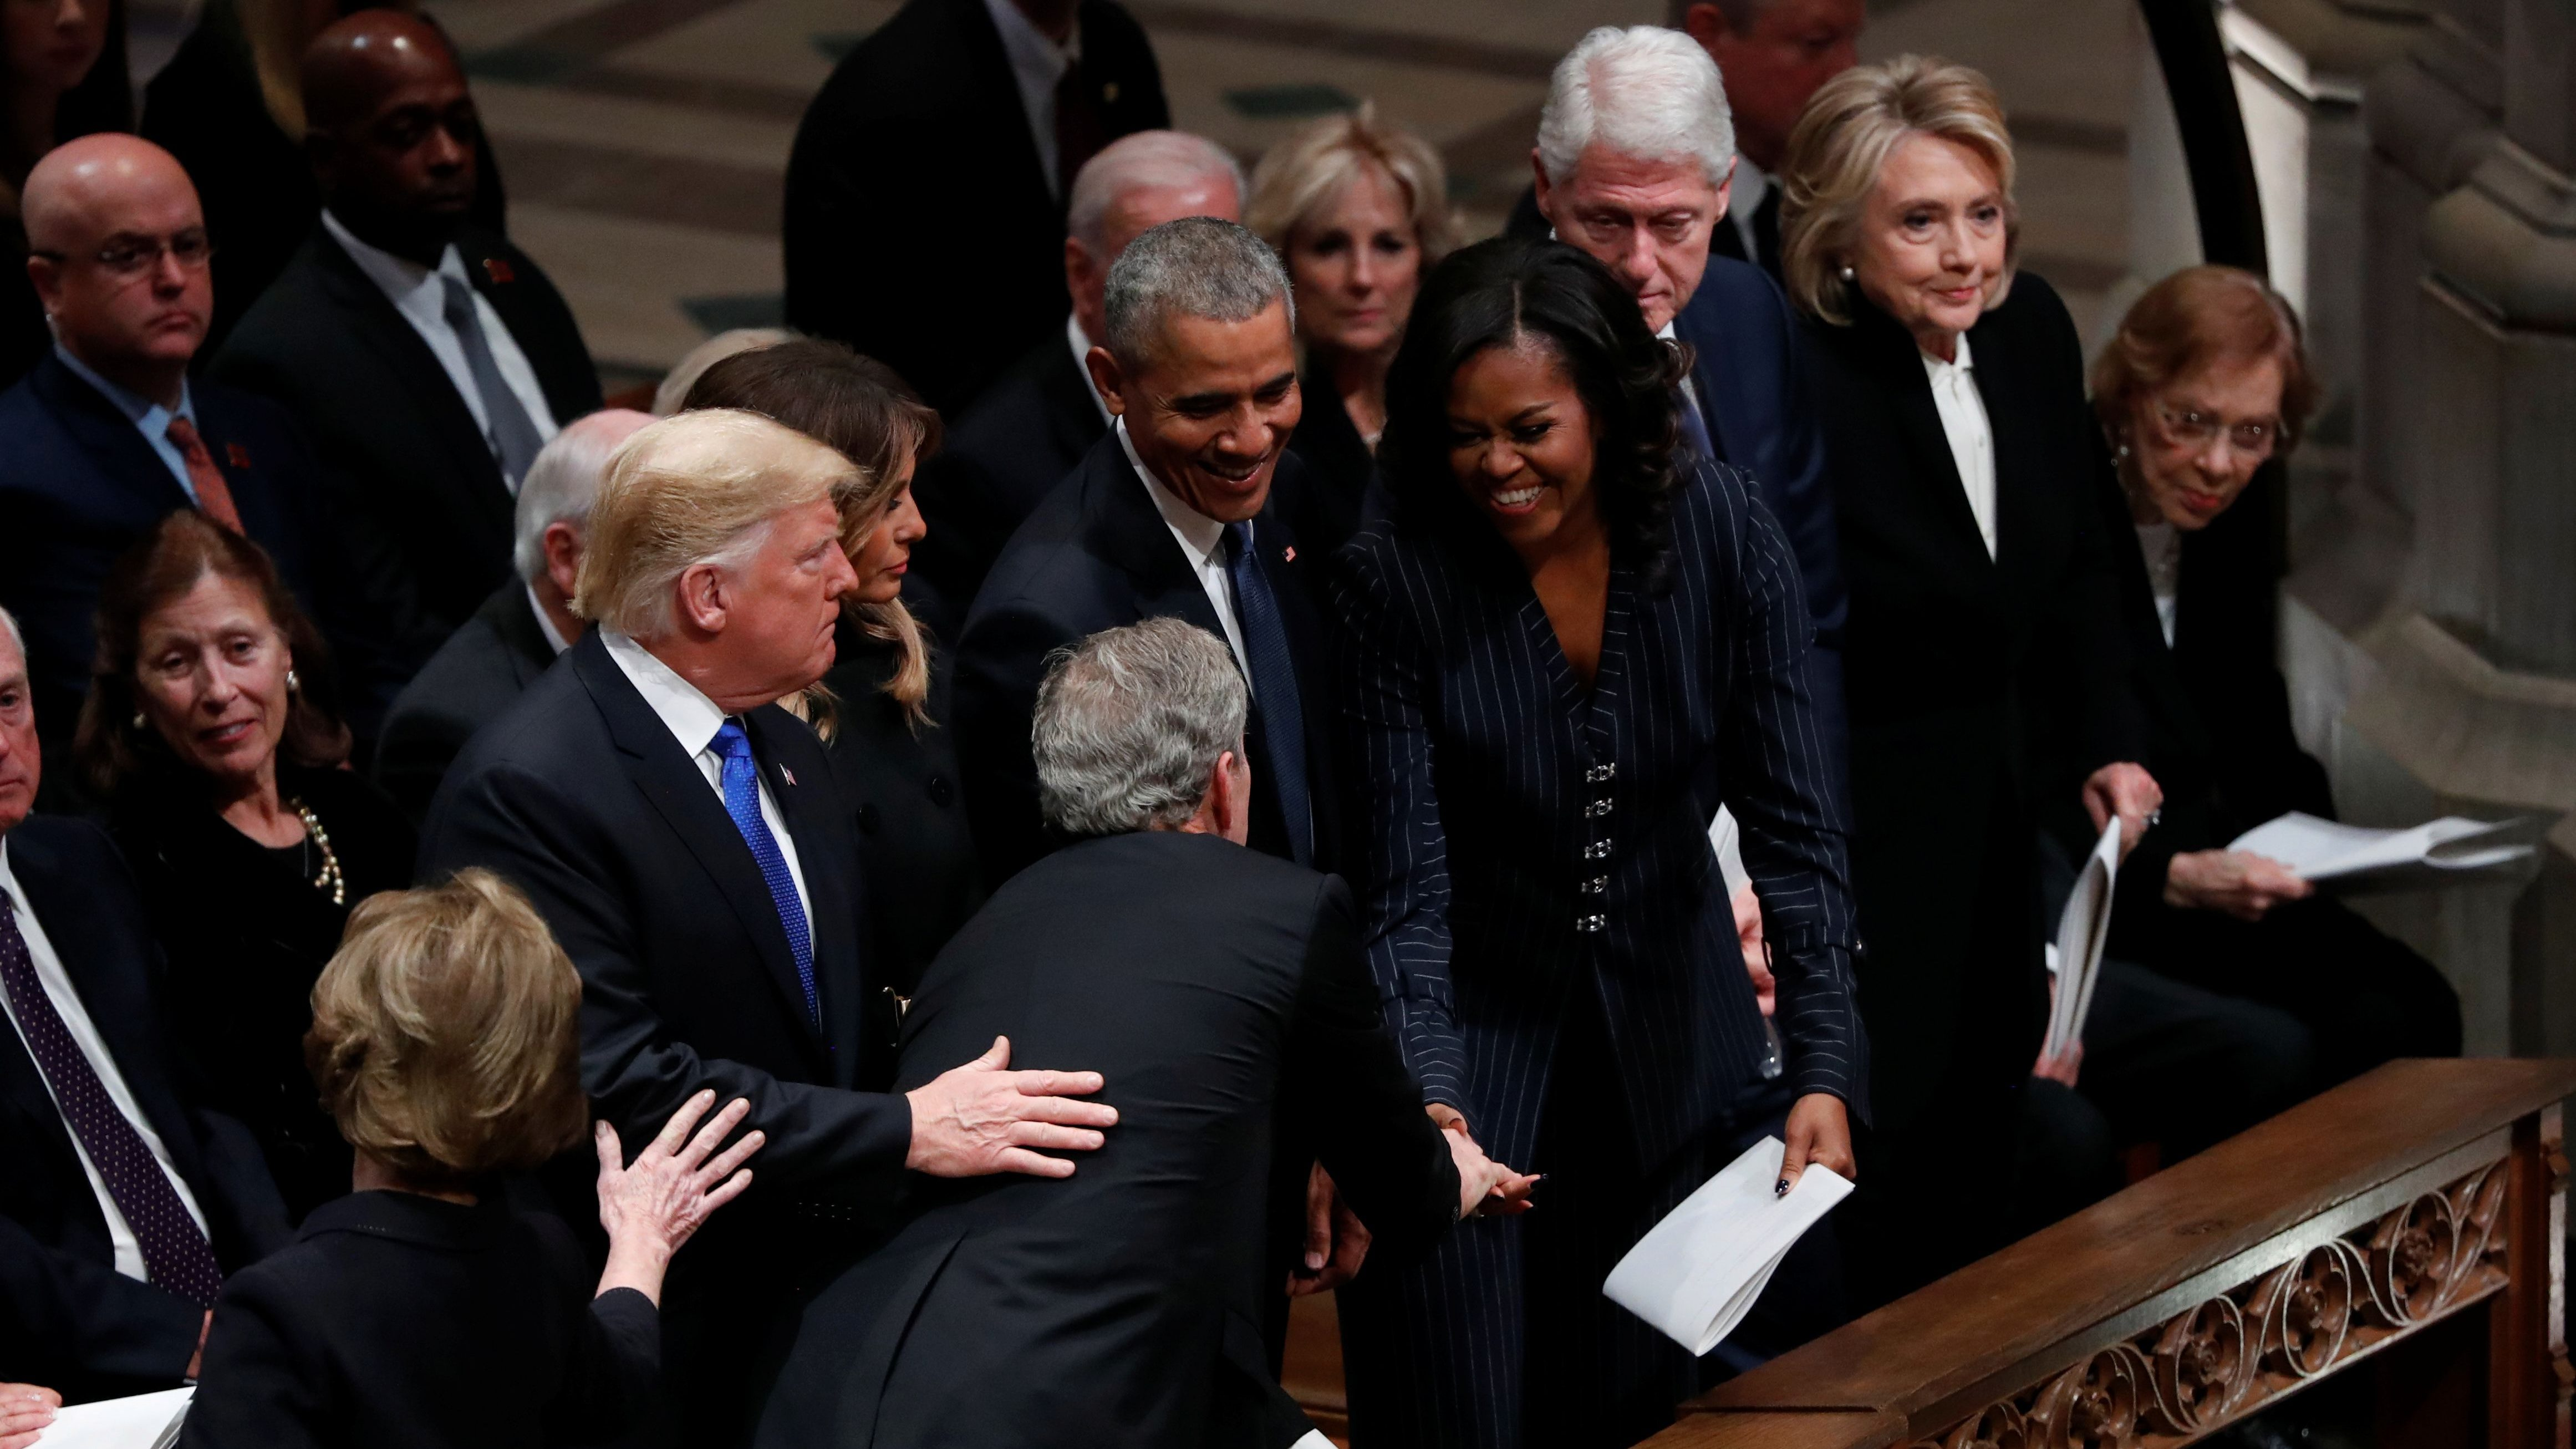 U.S. President George W. Bush reaches across in front of U.S. President Donald Trump and first lady Melania Trump to greet former President Barack Obama and former first lady Michelle Obama, sitting in the front row with former President Bill Clinton, former first lady Hillary Clinton and former first lady Rosalynn Carter as he arrives at the state funeral for his father former U.S. President George H.W. Bush at the Washington National Cathedral in Washington, U.S., December 5, 2018. REUTERS/Kevin Lamarque - RC1565D4EE00